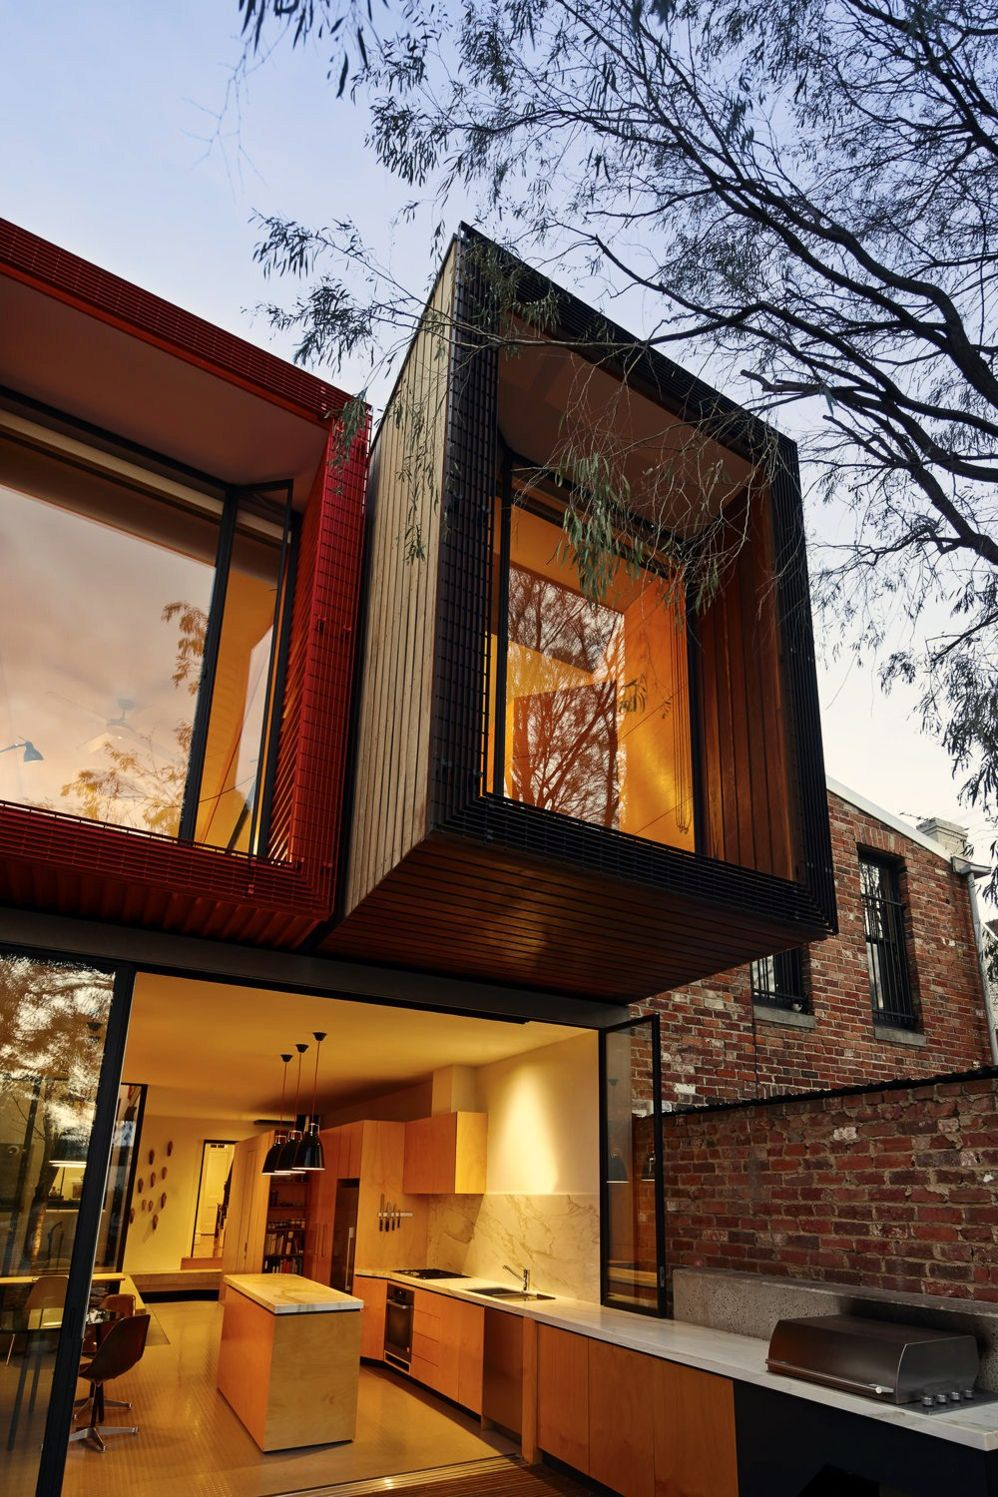 https://elonahome.com/wp-content/uploads/2020/08/Modern-urban-house-style-with-cantilever-structure-for-useful-backyard-terrace-Moor-House-7.jpg